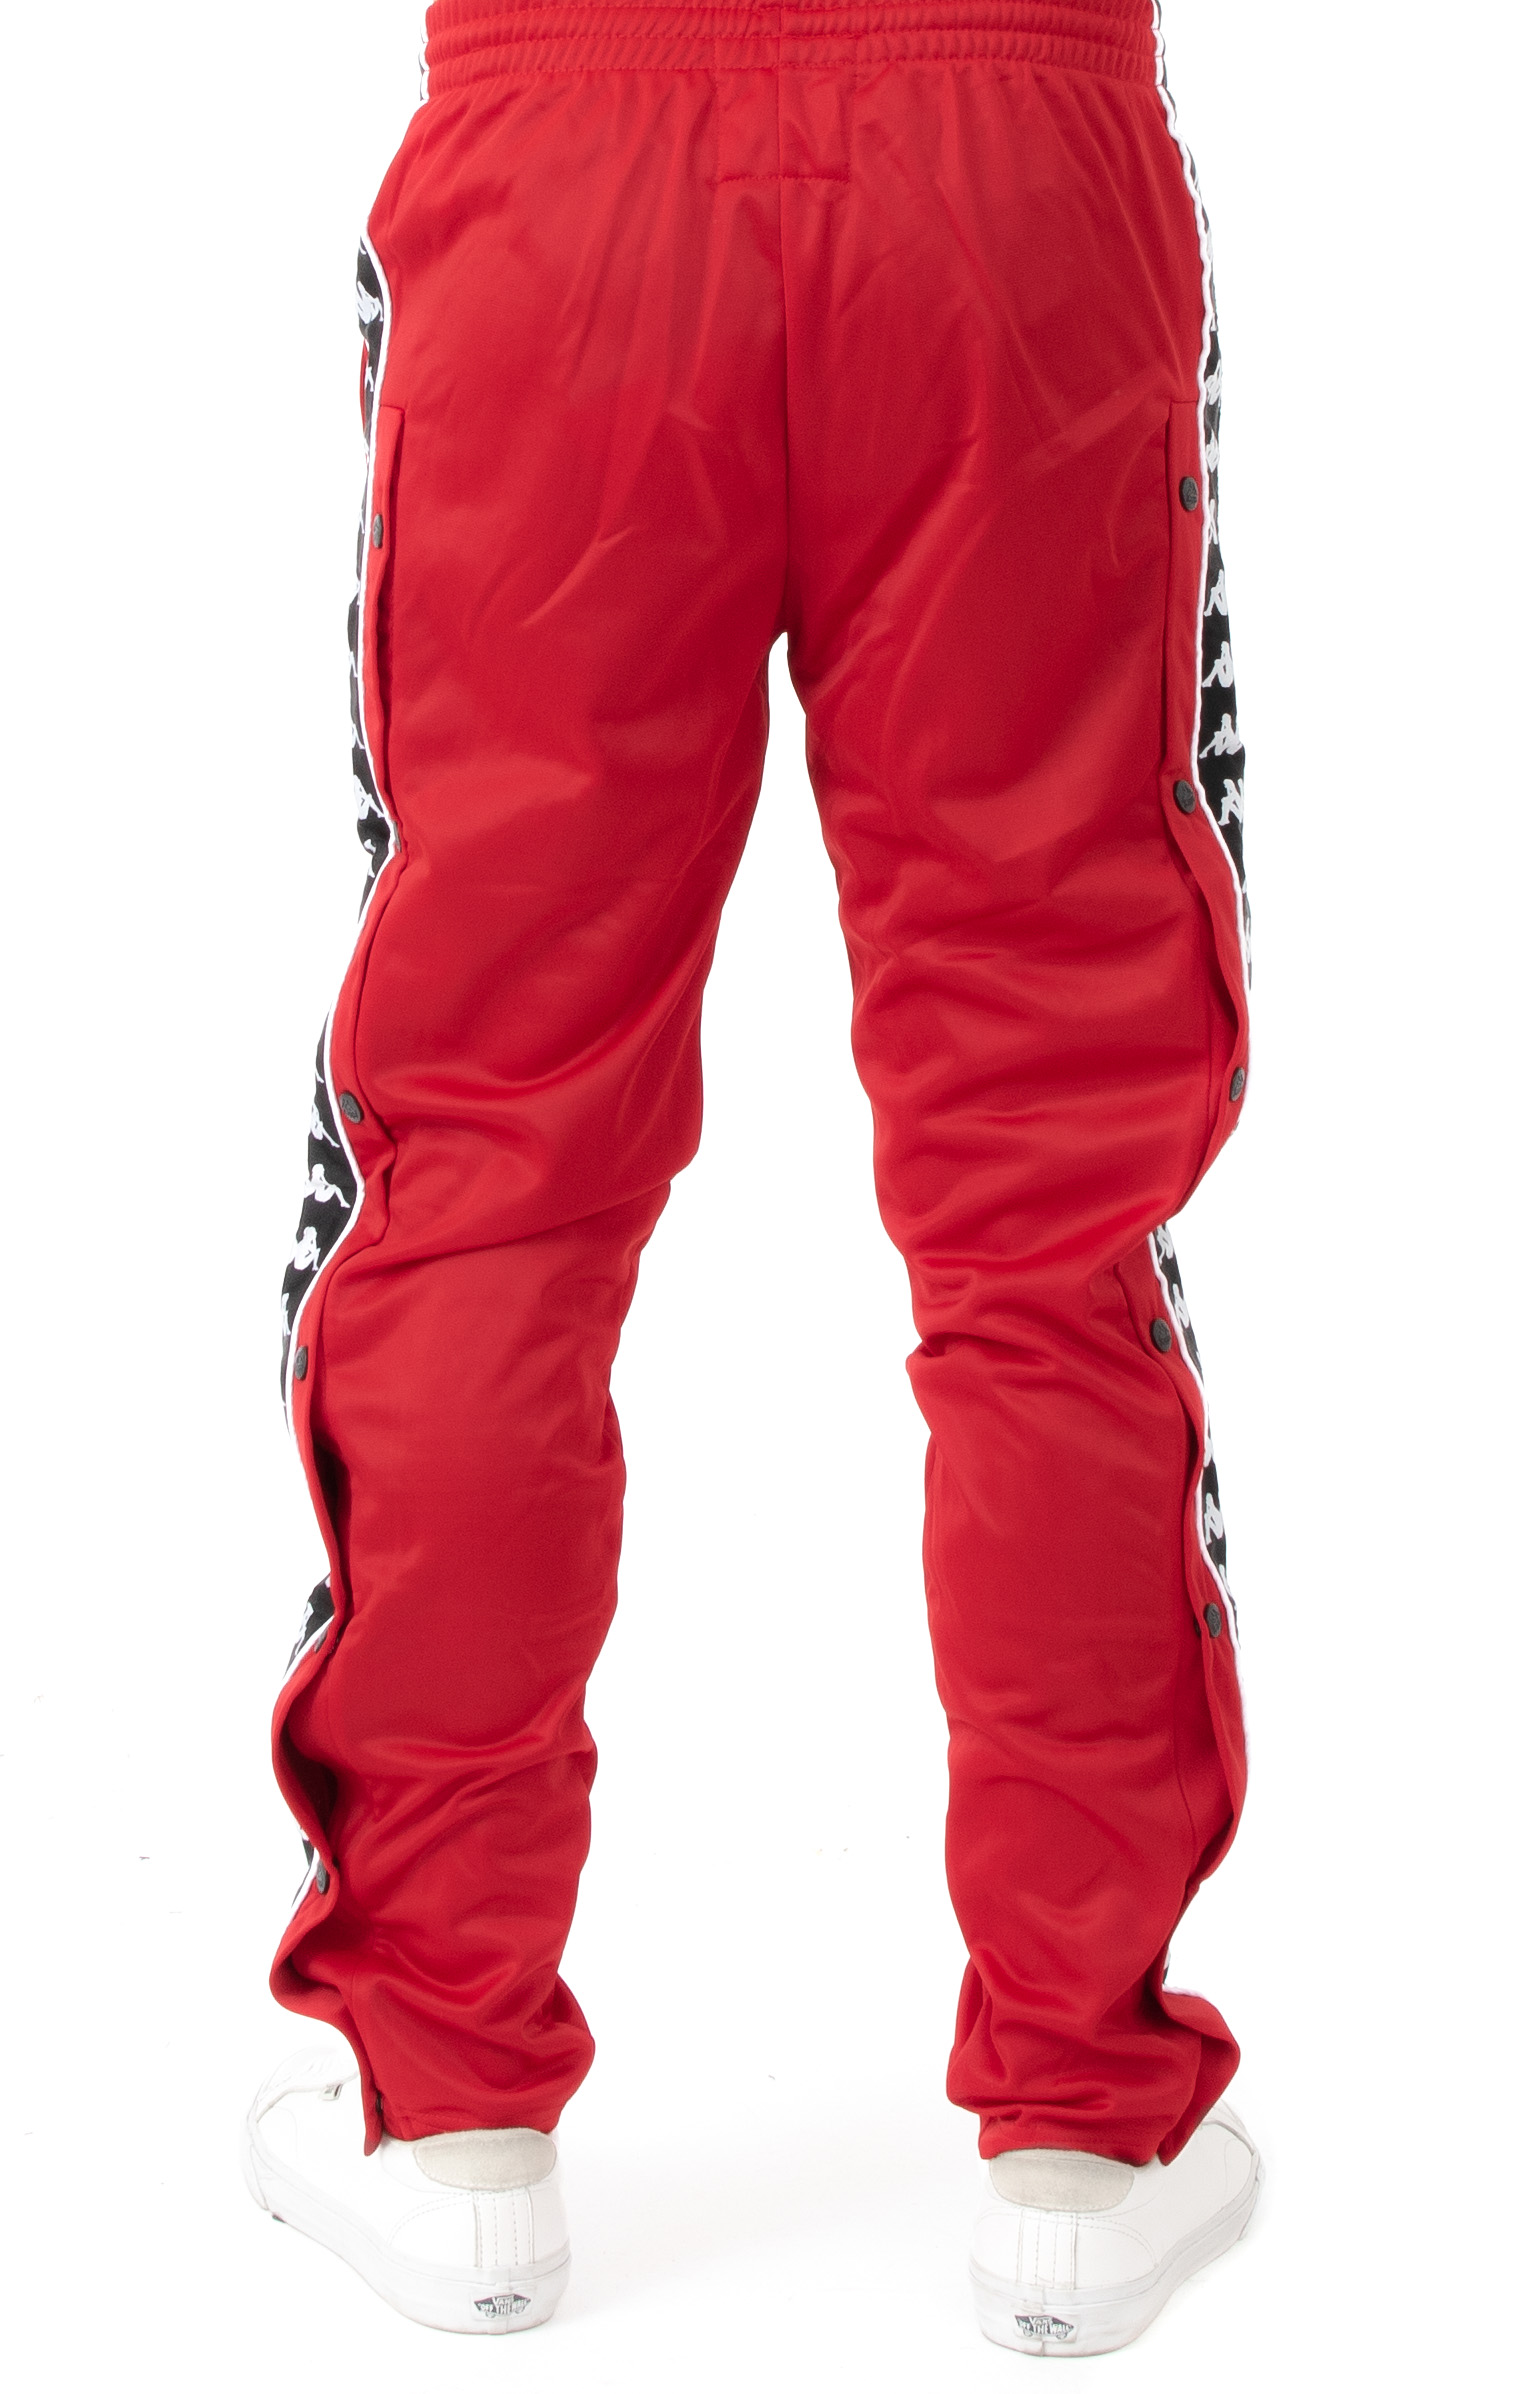 57b84b5a9152 Authentic Hector Slim Fit Track Pant - Red/Black/White. Thumbnail 1  Thumbnail 1 Thumbnail 1